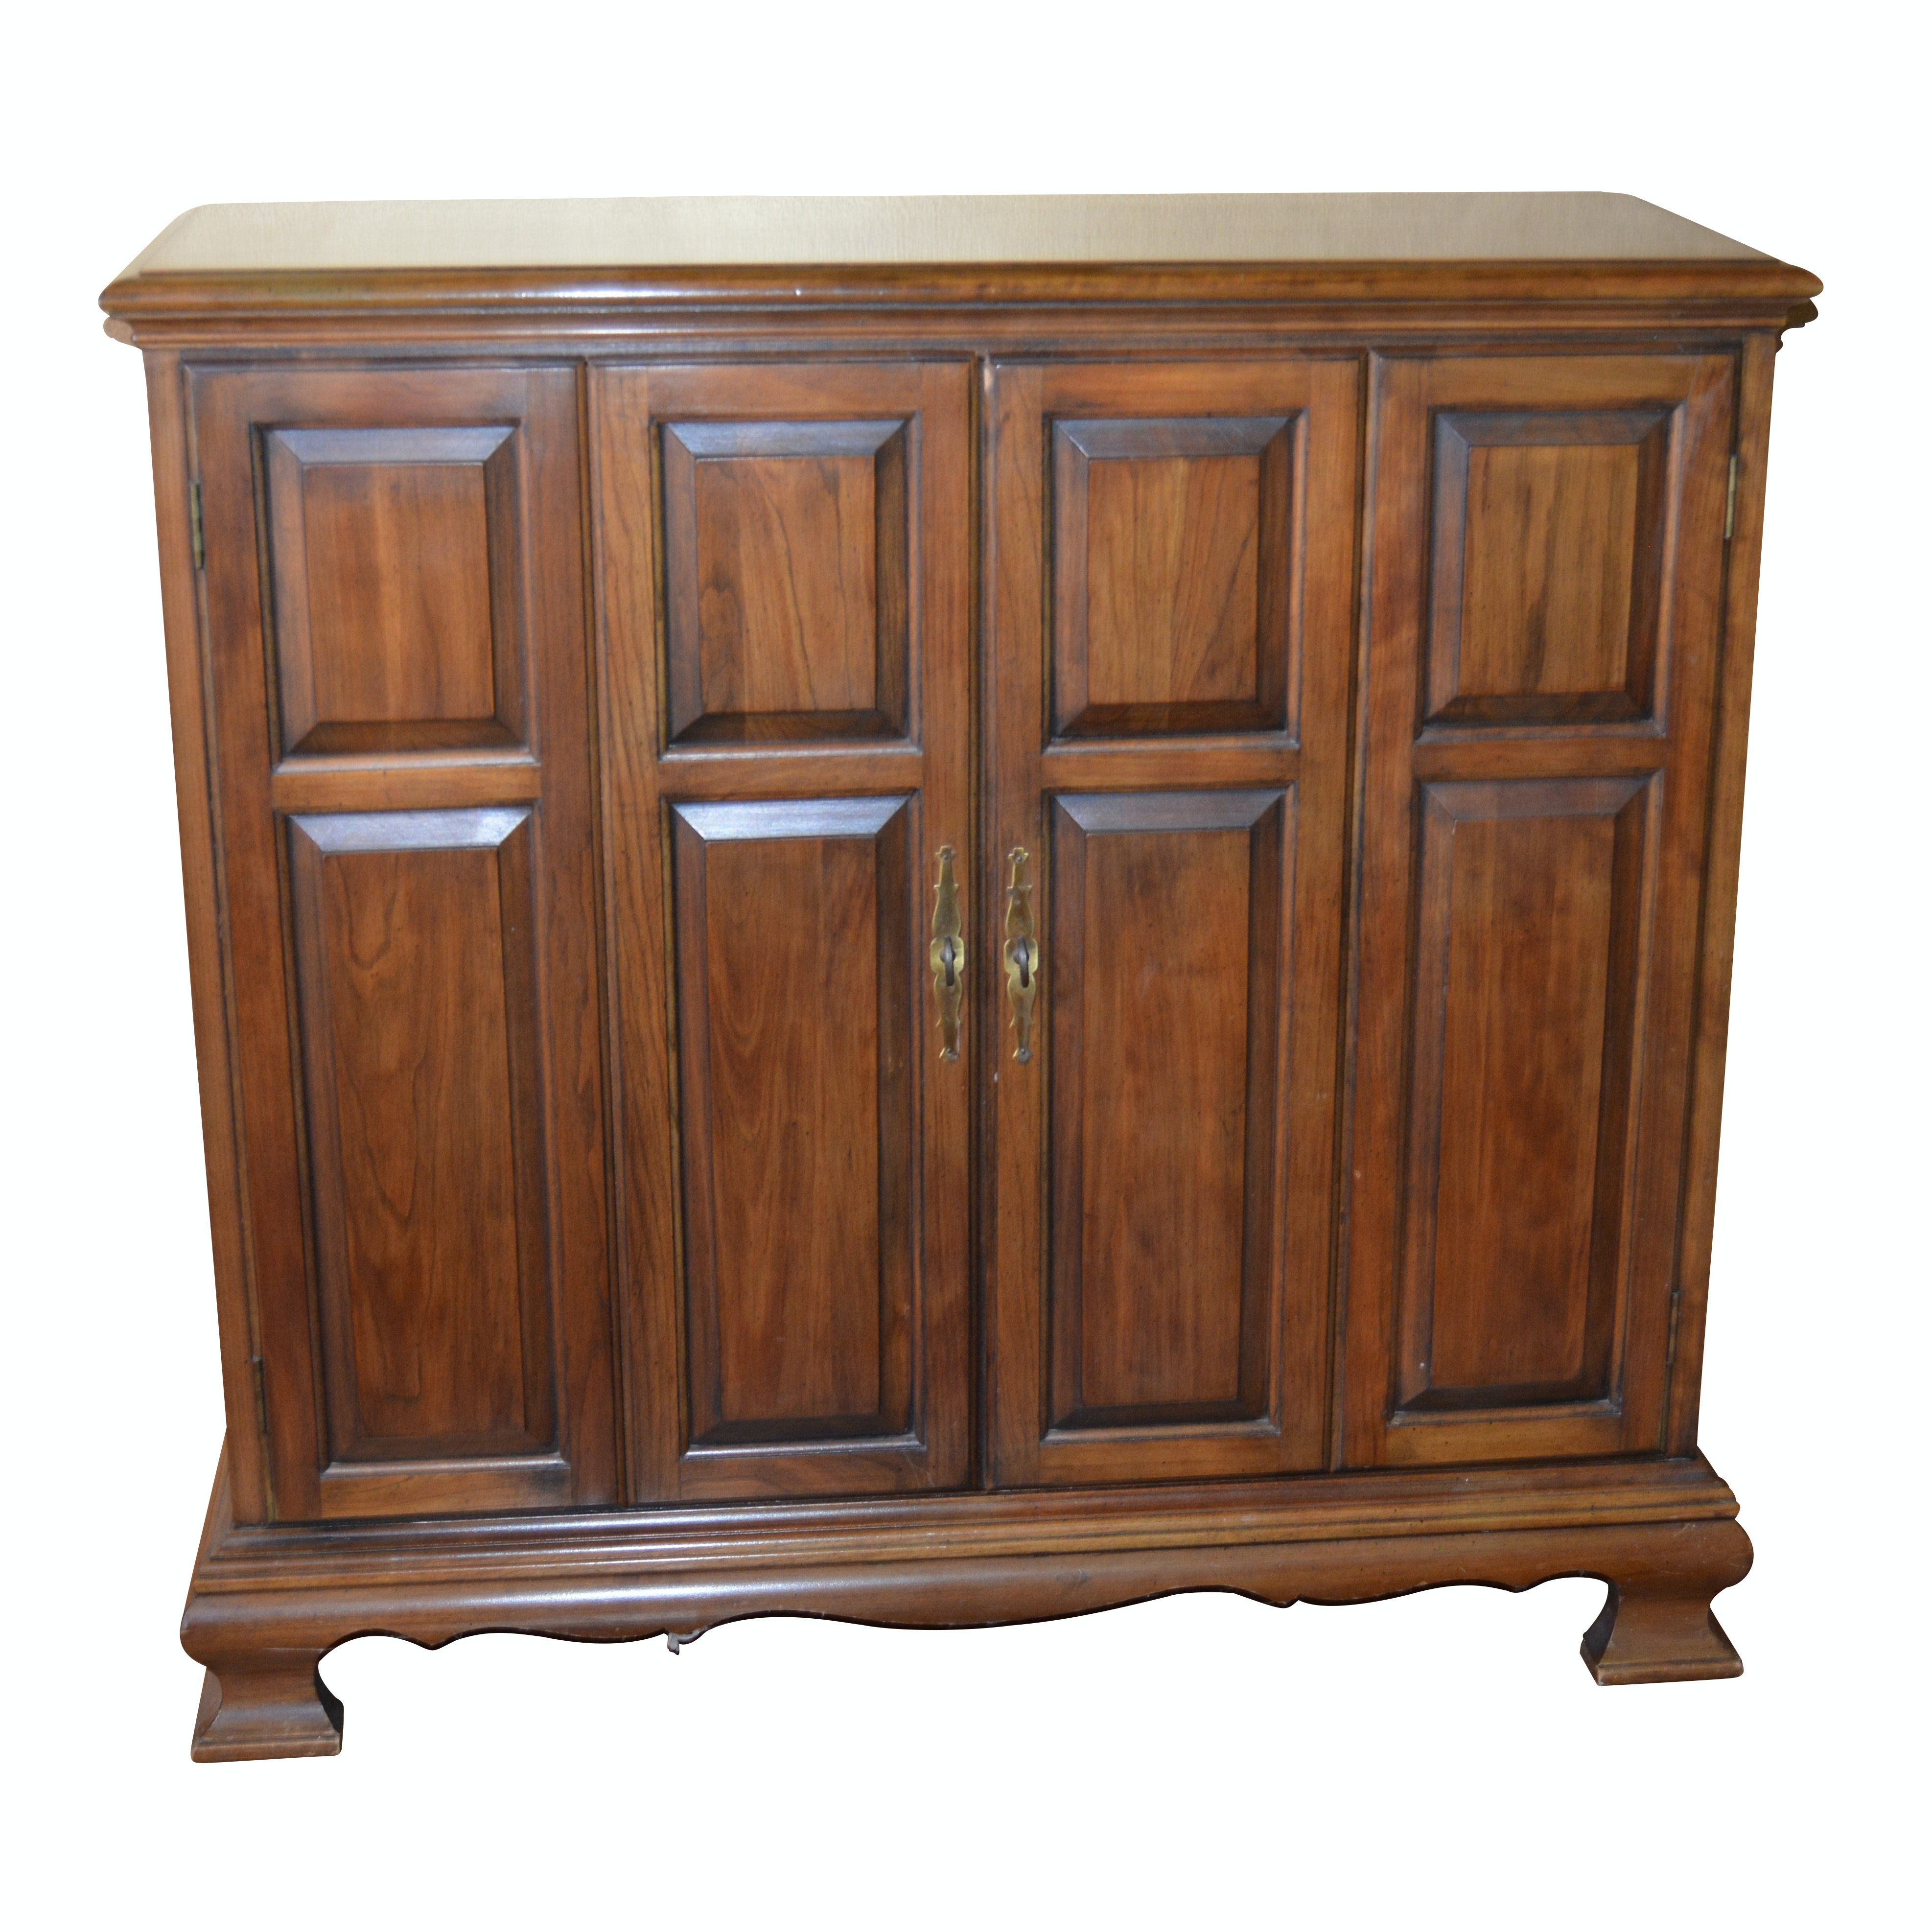 Cherry Cabinet and Butler Fruitwood Wall Mirror, Vintage